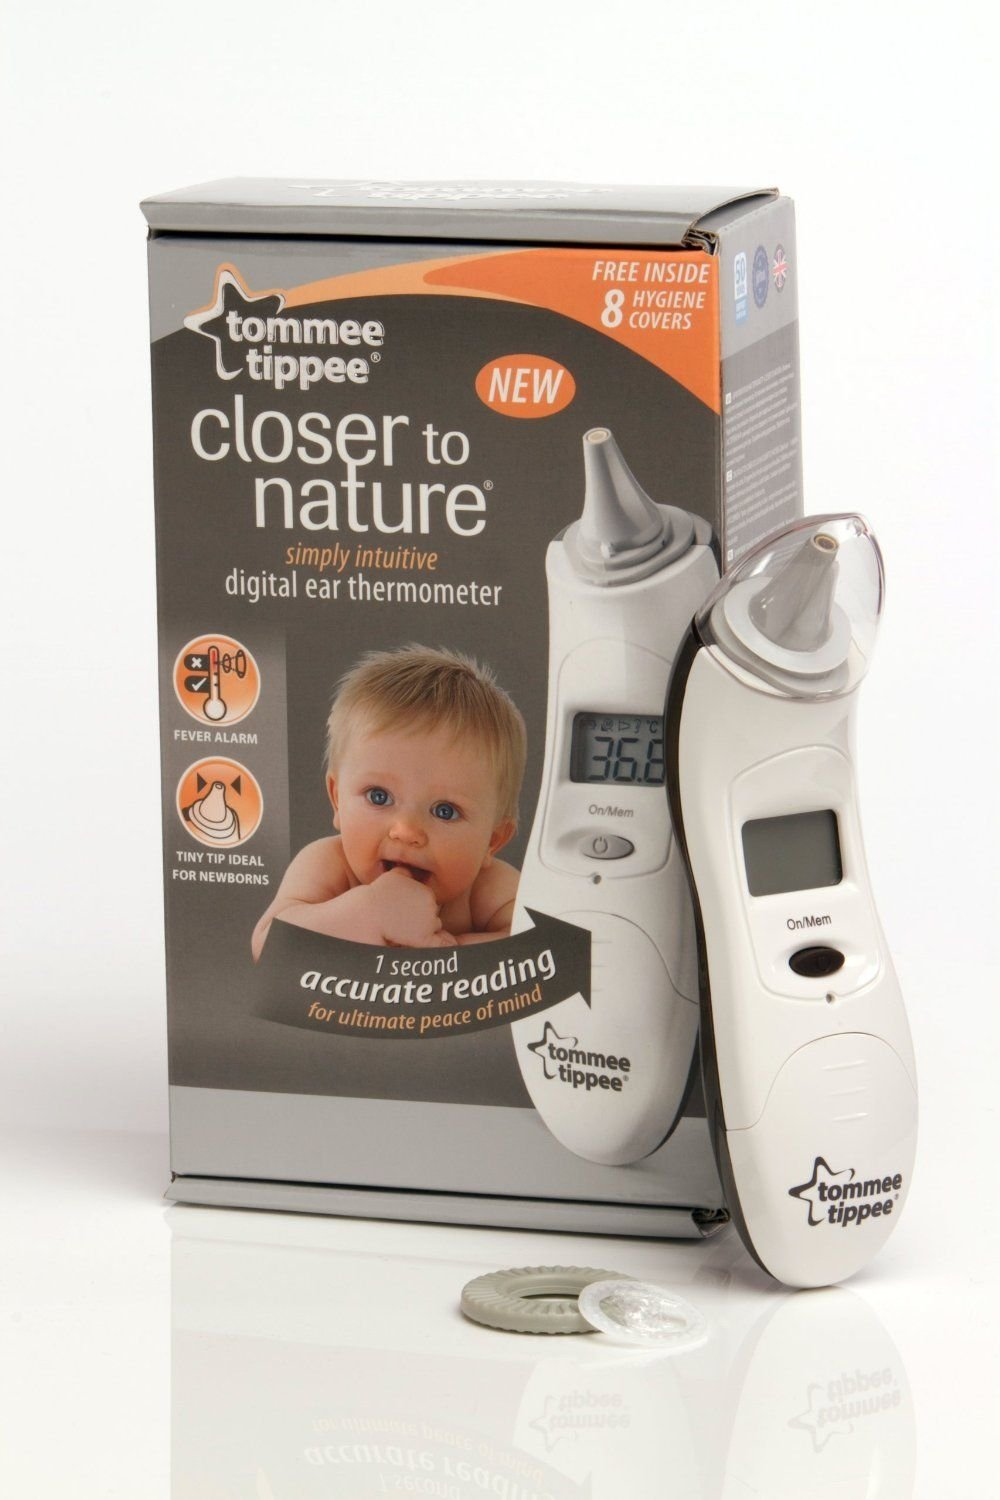 Tommee Tippee Closer to Nature Digitial Baby Children Ear Thermometer Brand New Gift for MOM